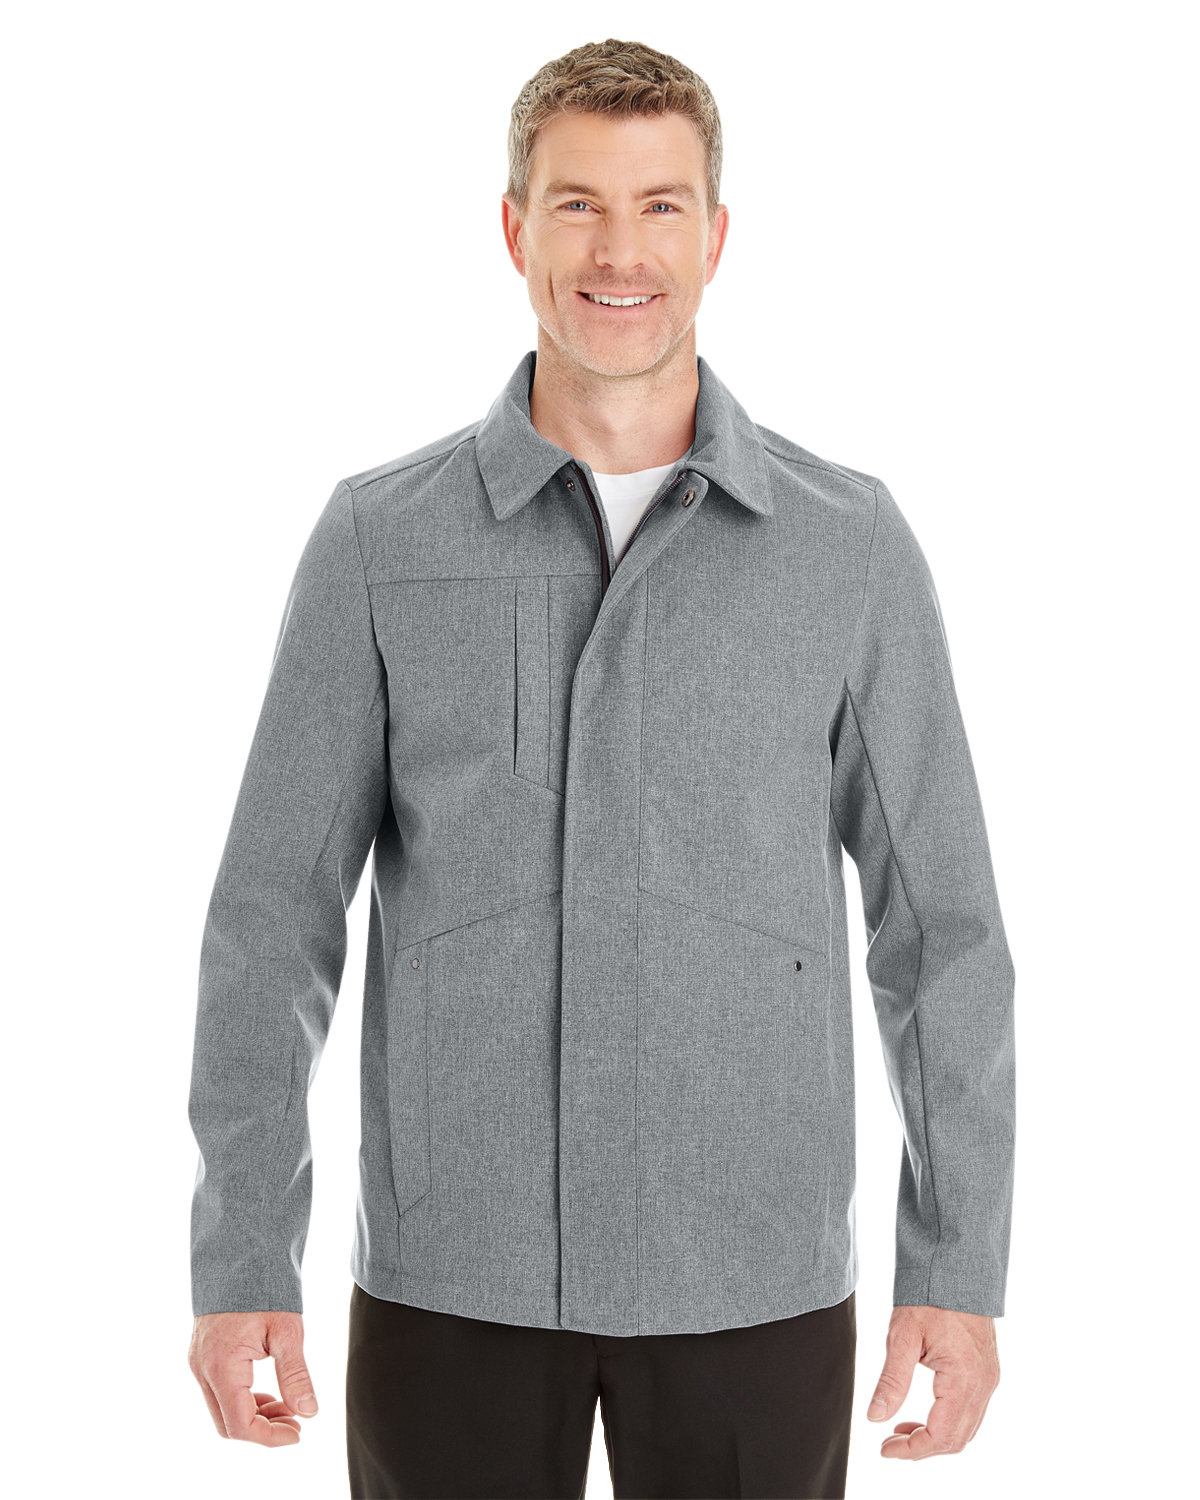 North End Men's Edge Soft Shell Jacket with Fold-Down Collar CITY GREY